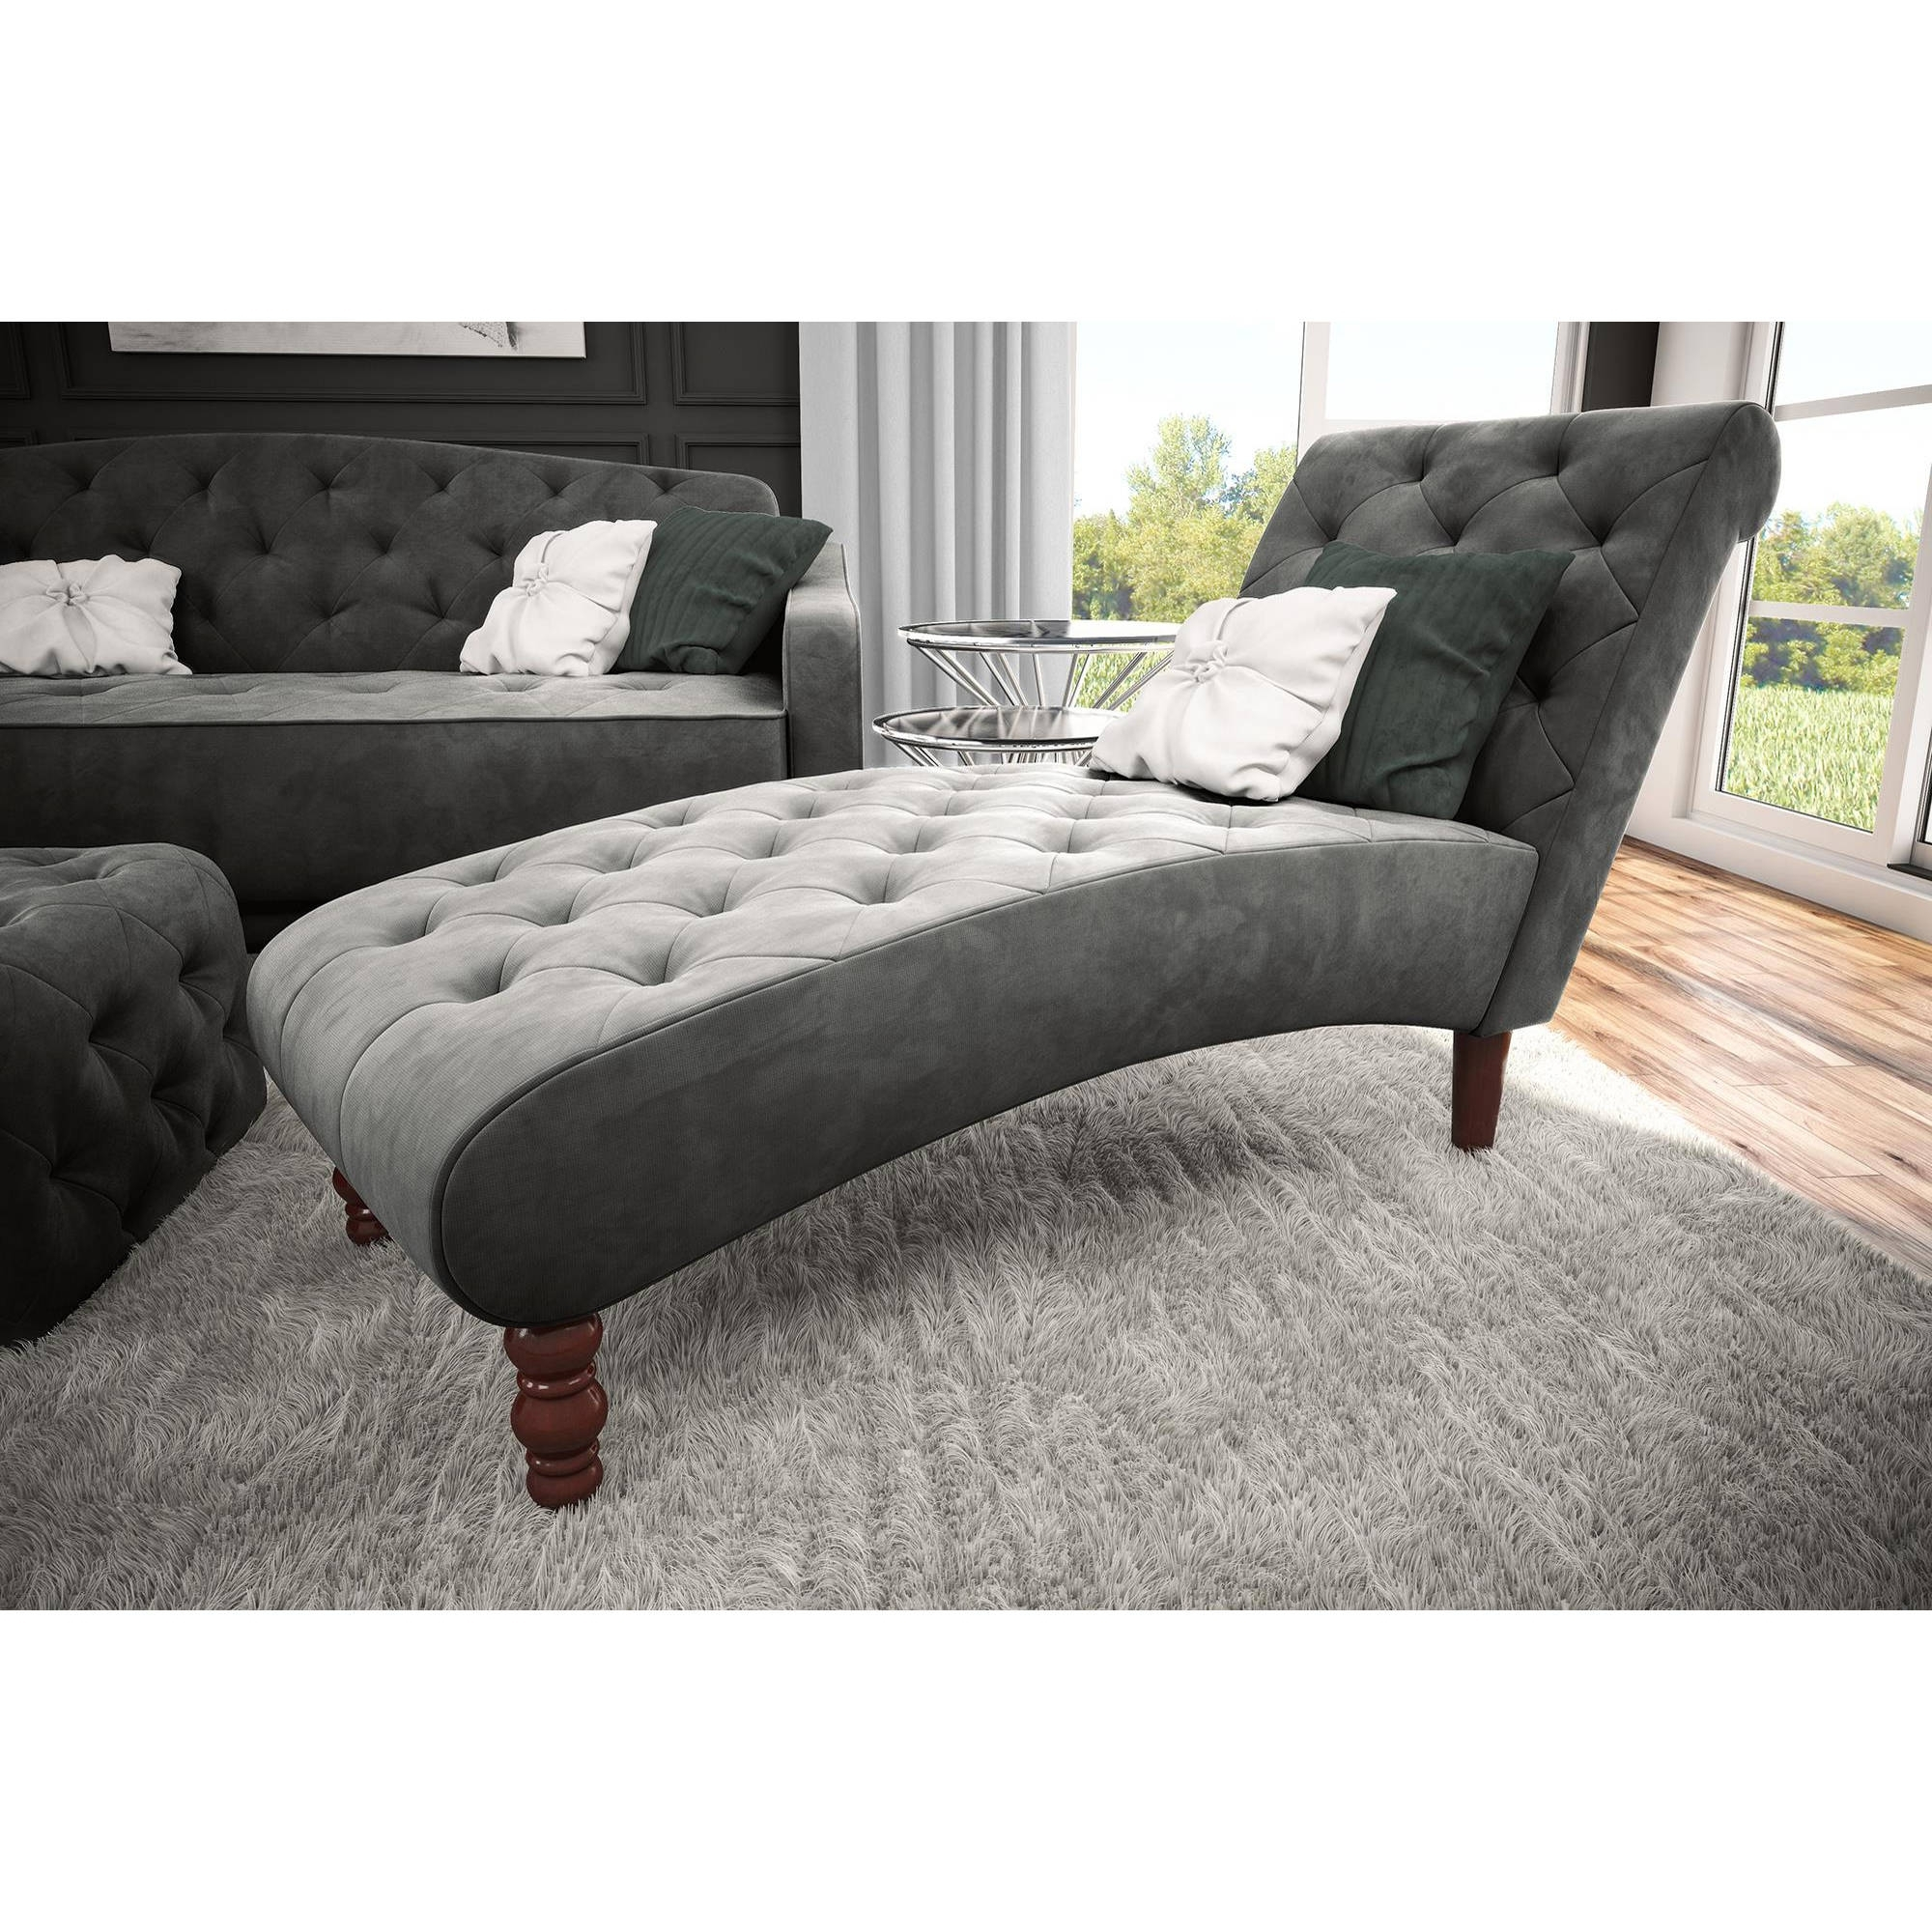 Novogratz Vintage Tufted Chaise, Multiple Colors – Walmart For Best And Newest Gray Chaises (View 12 of 15)